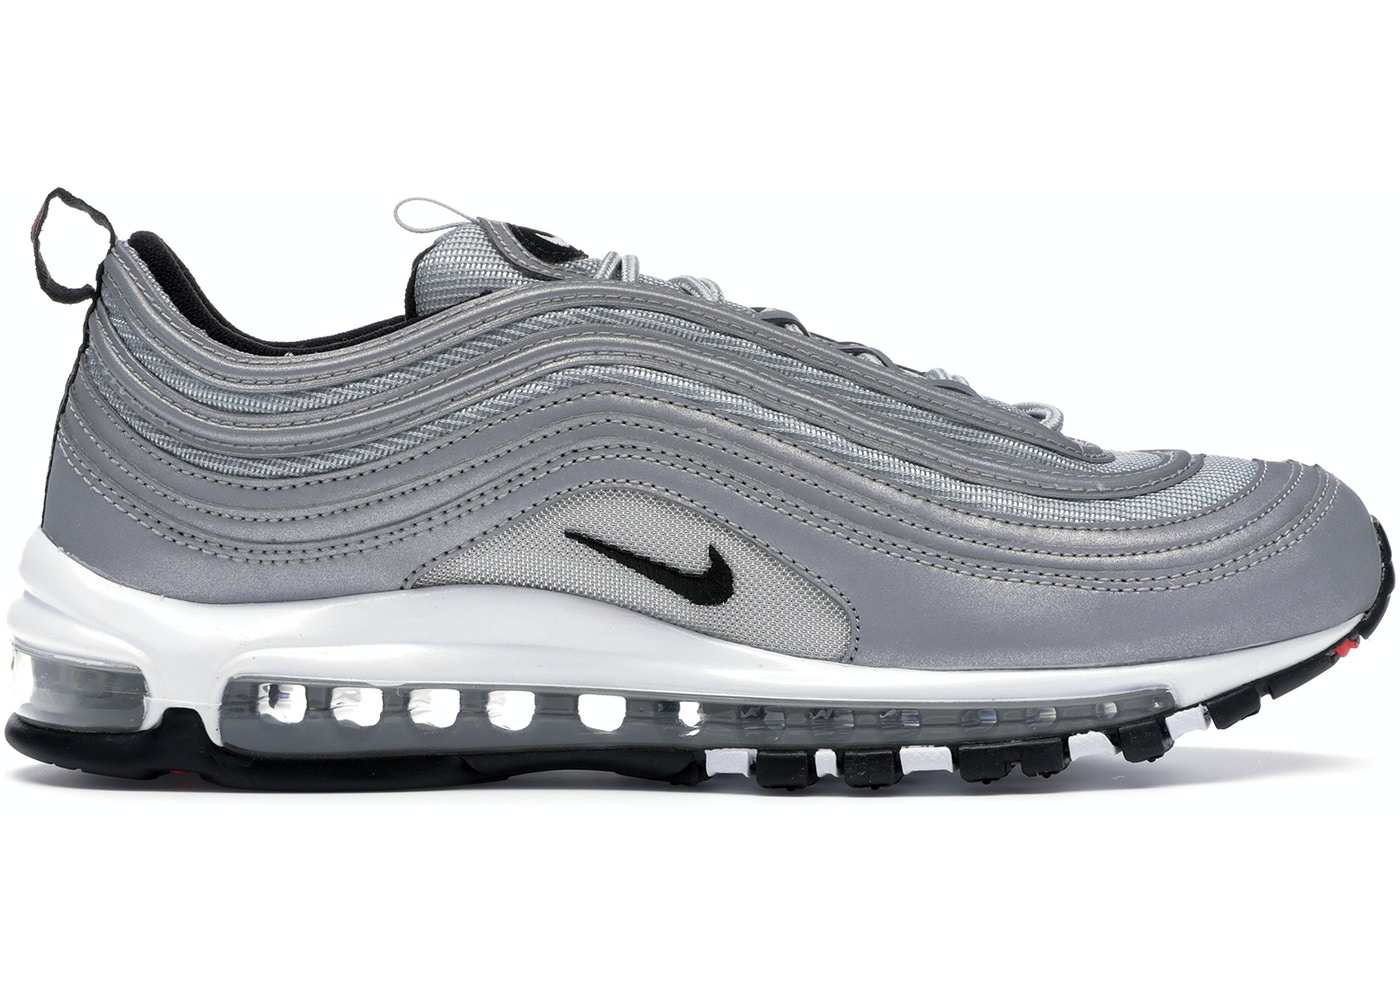 South Korea Nike Air Max 97 OG Snowflake Full palm As